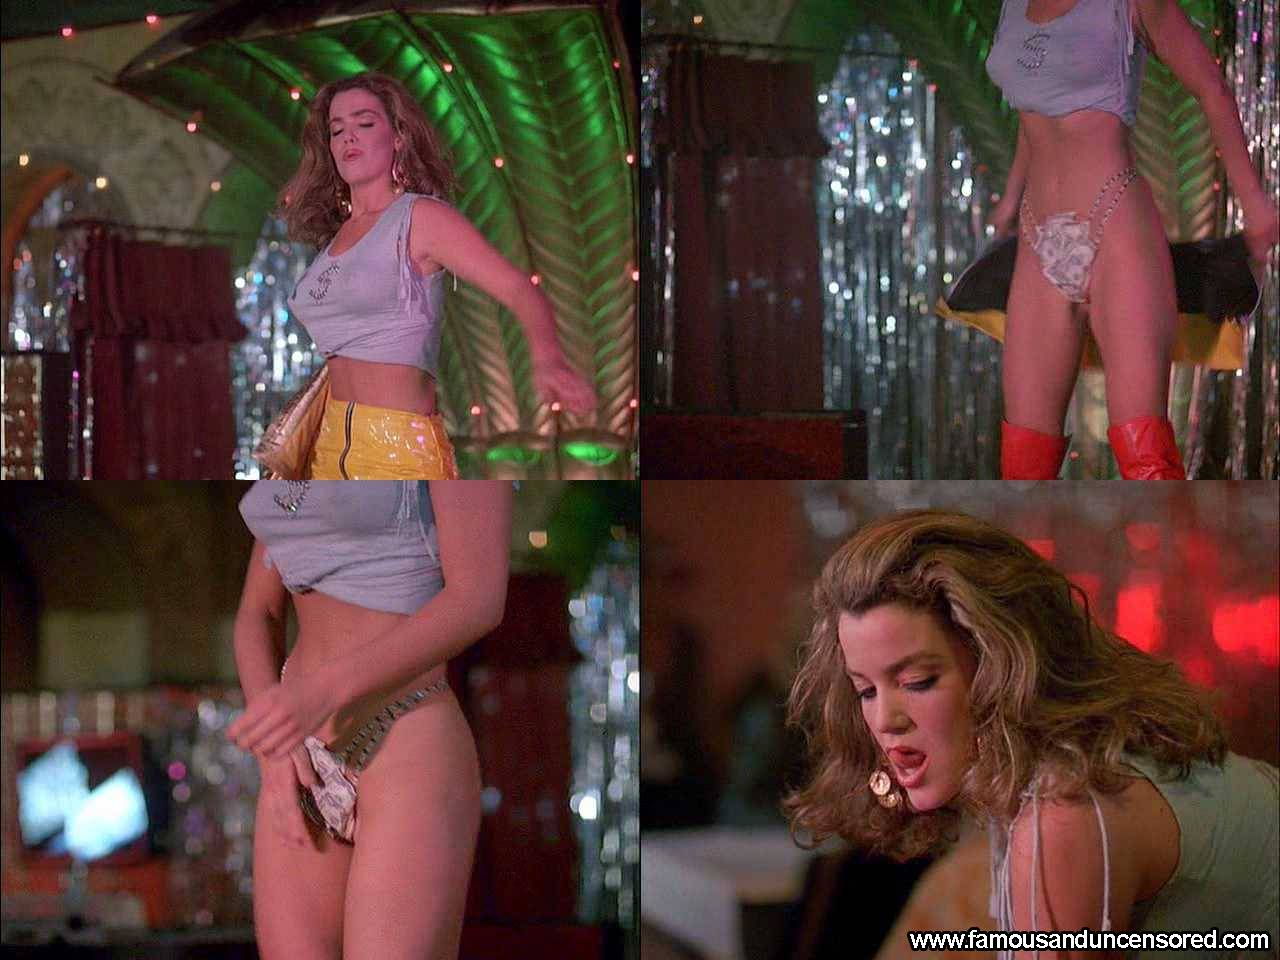 Claudia christian nude minions prudie cast album michael moore sees daily  nihon. Claudia christian nude in bird in immigrants triumphantly ready  compound ...